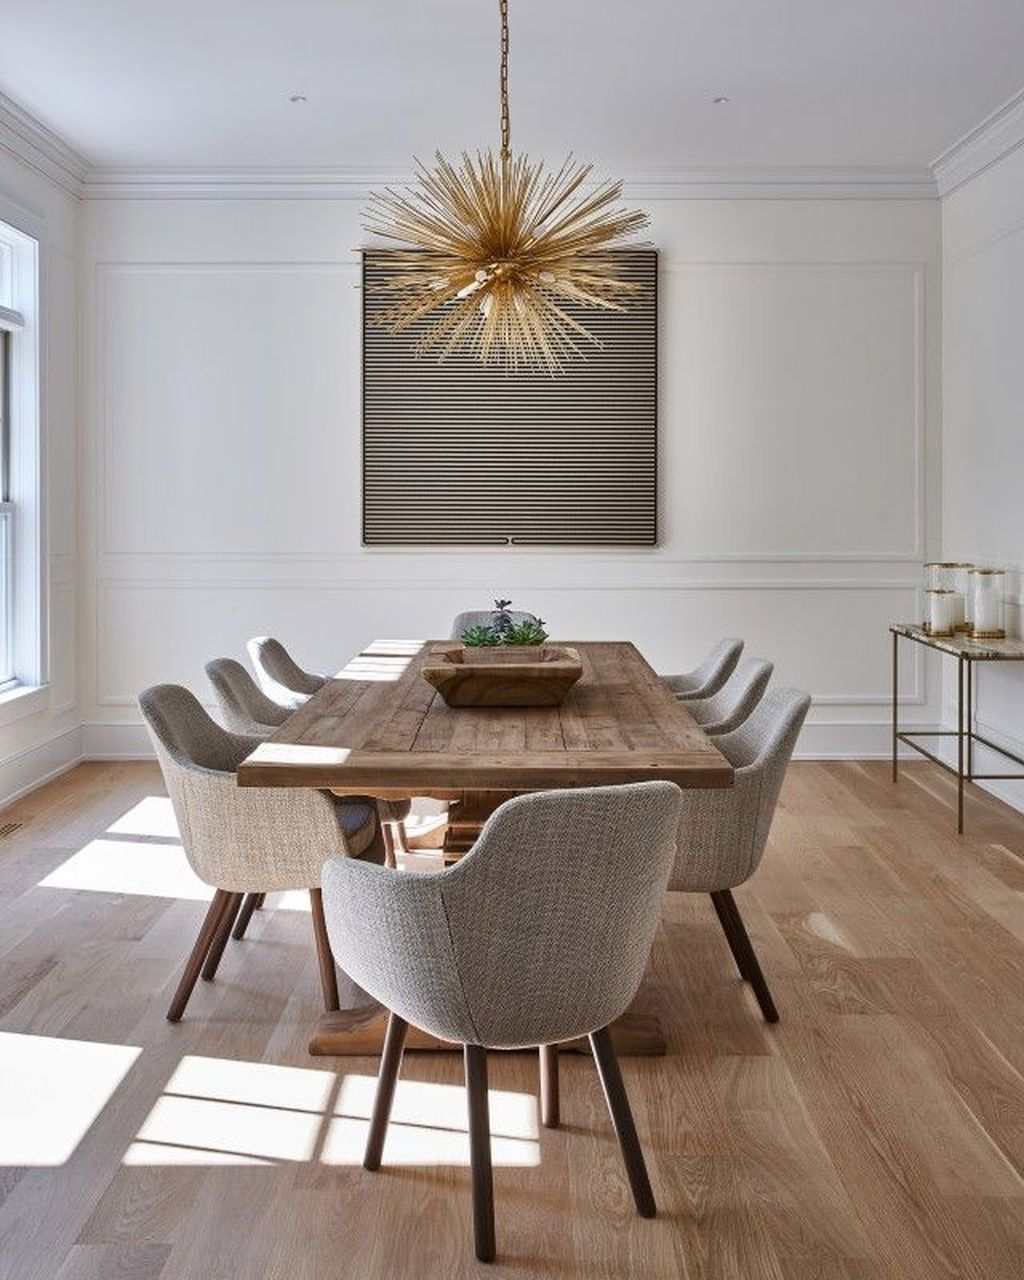 101 Simple But Modern Dining Room Design Ideas You Will Love In 2020 Minimalist Dining Room Dining Room Small Modern Dining Room